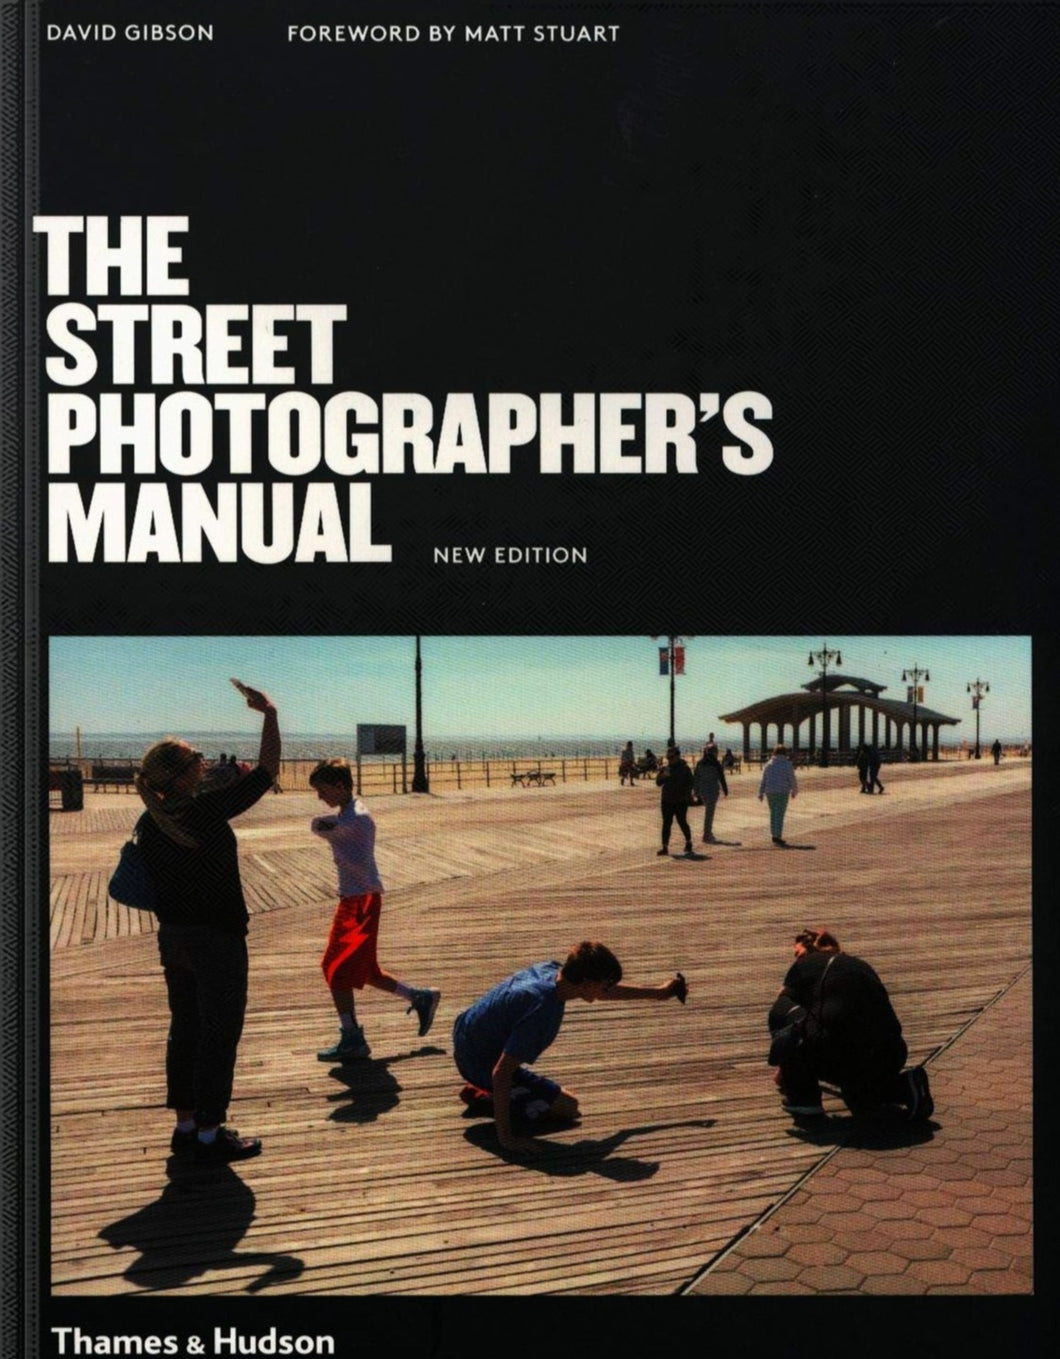 David Gibson / The Street Photographer's Manual